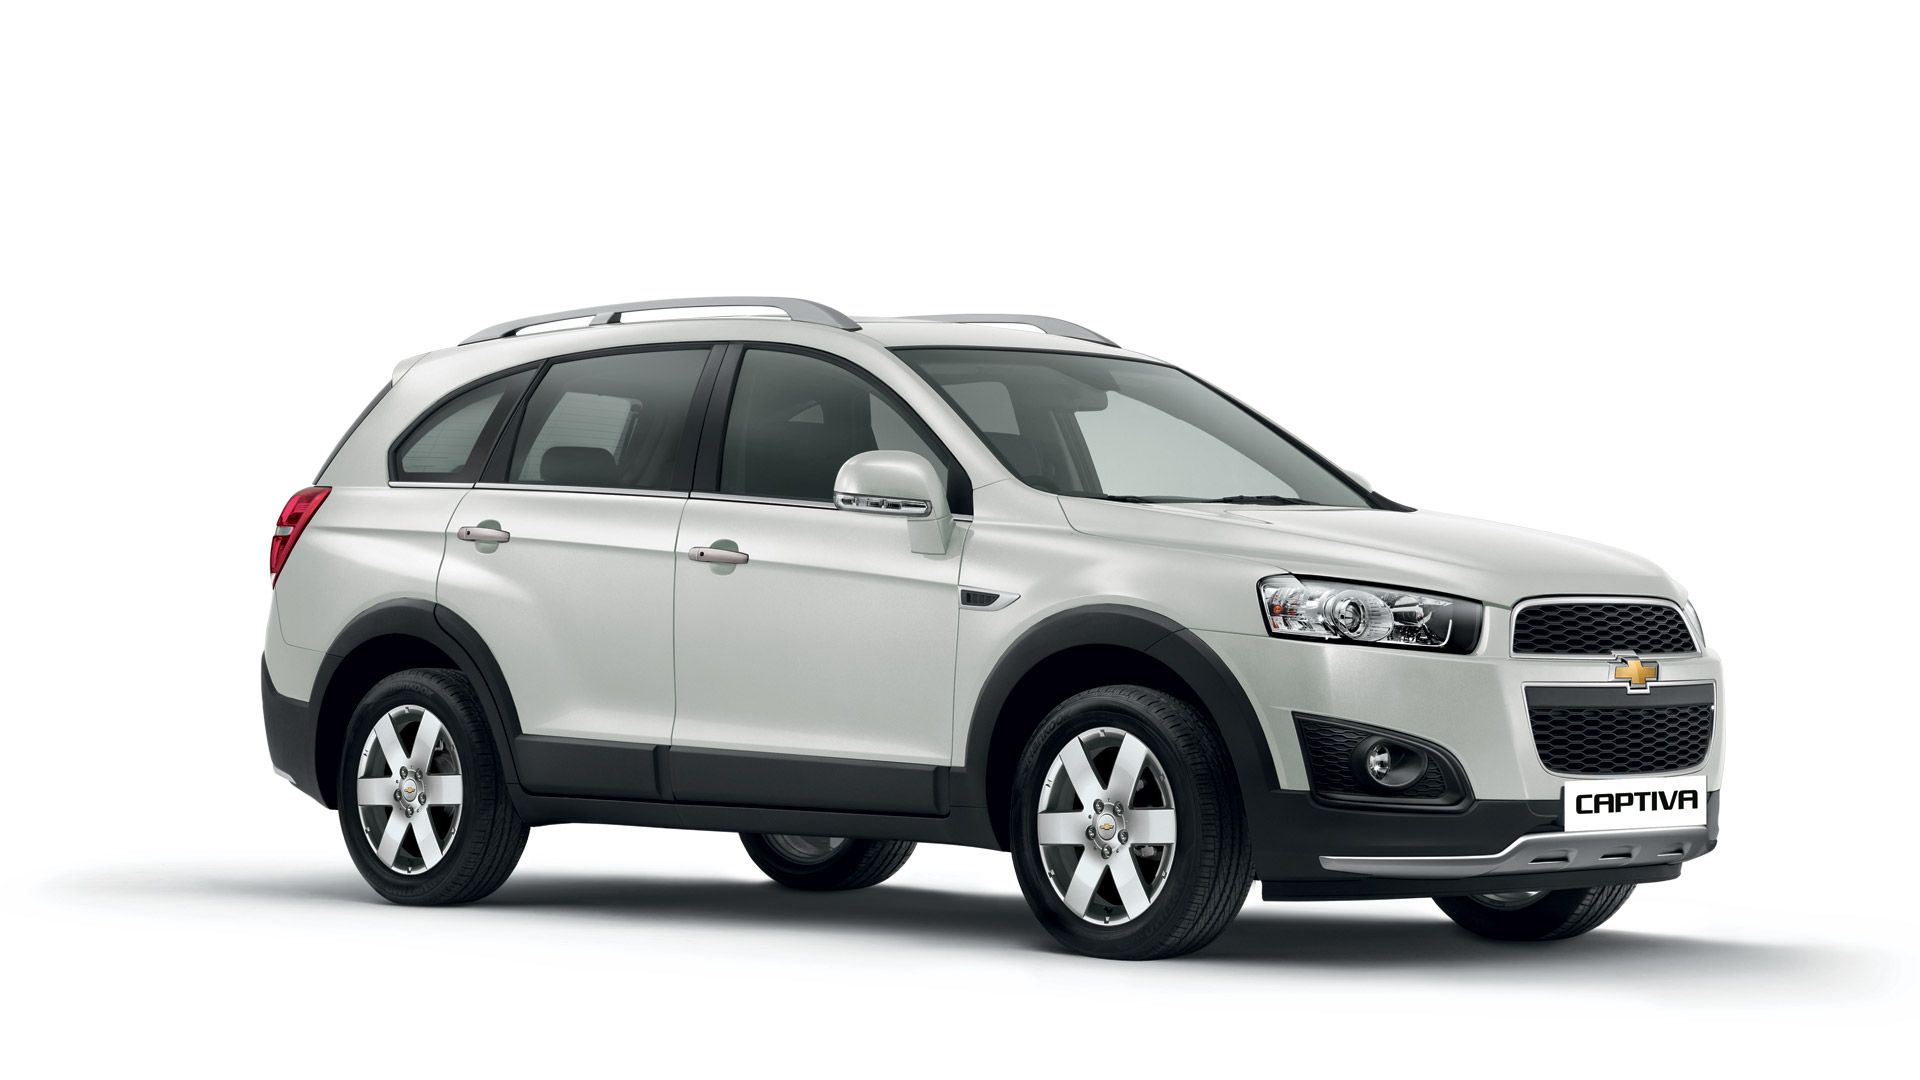 Chevrolet India Has Launched The 2014 Captiva Suv In India It Is